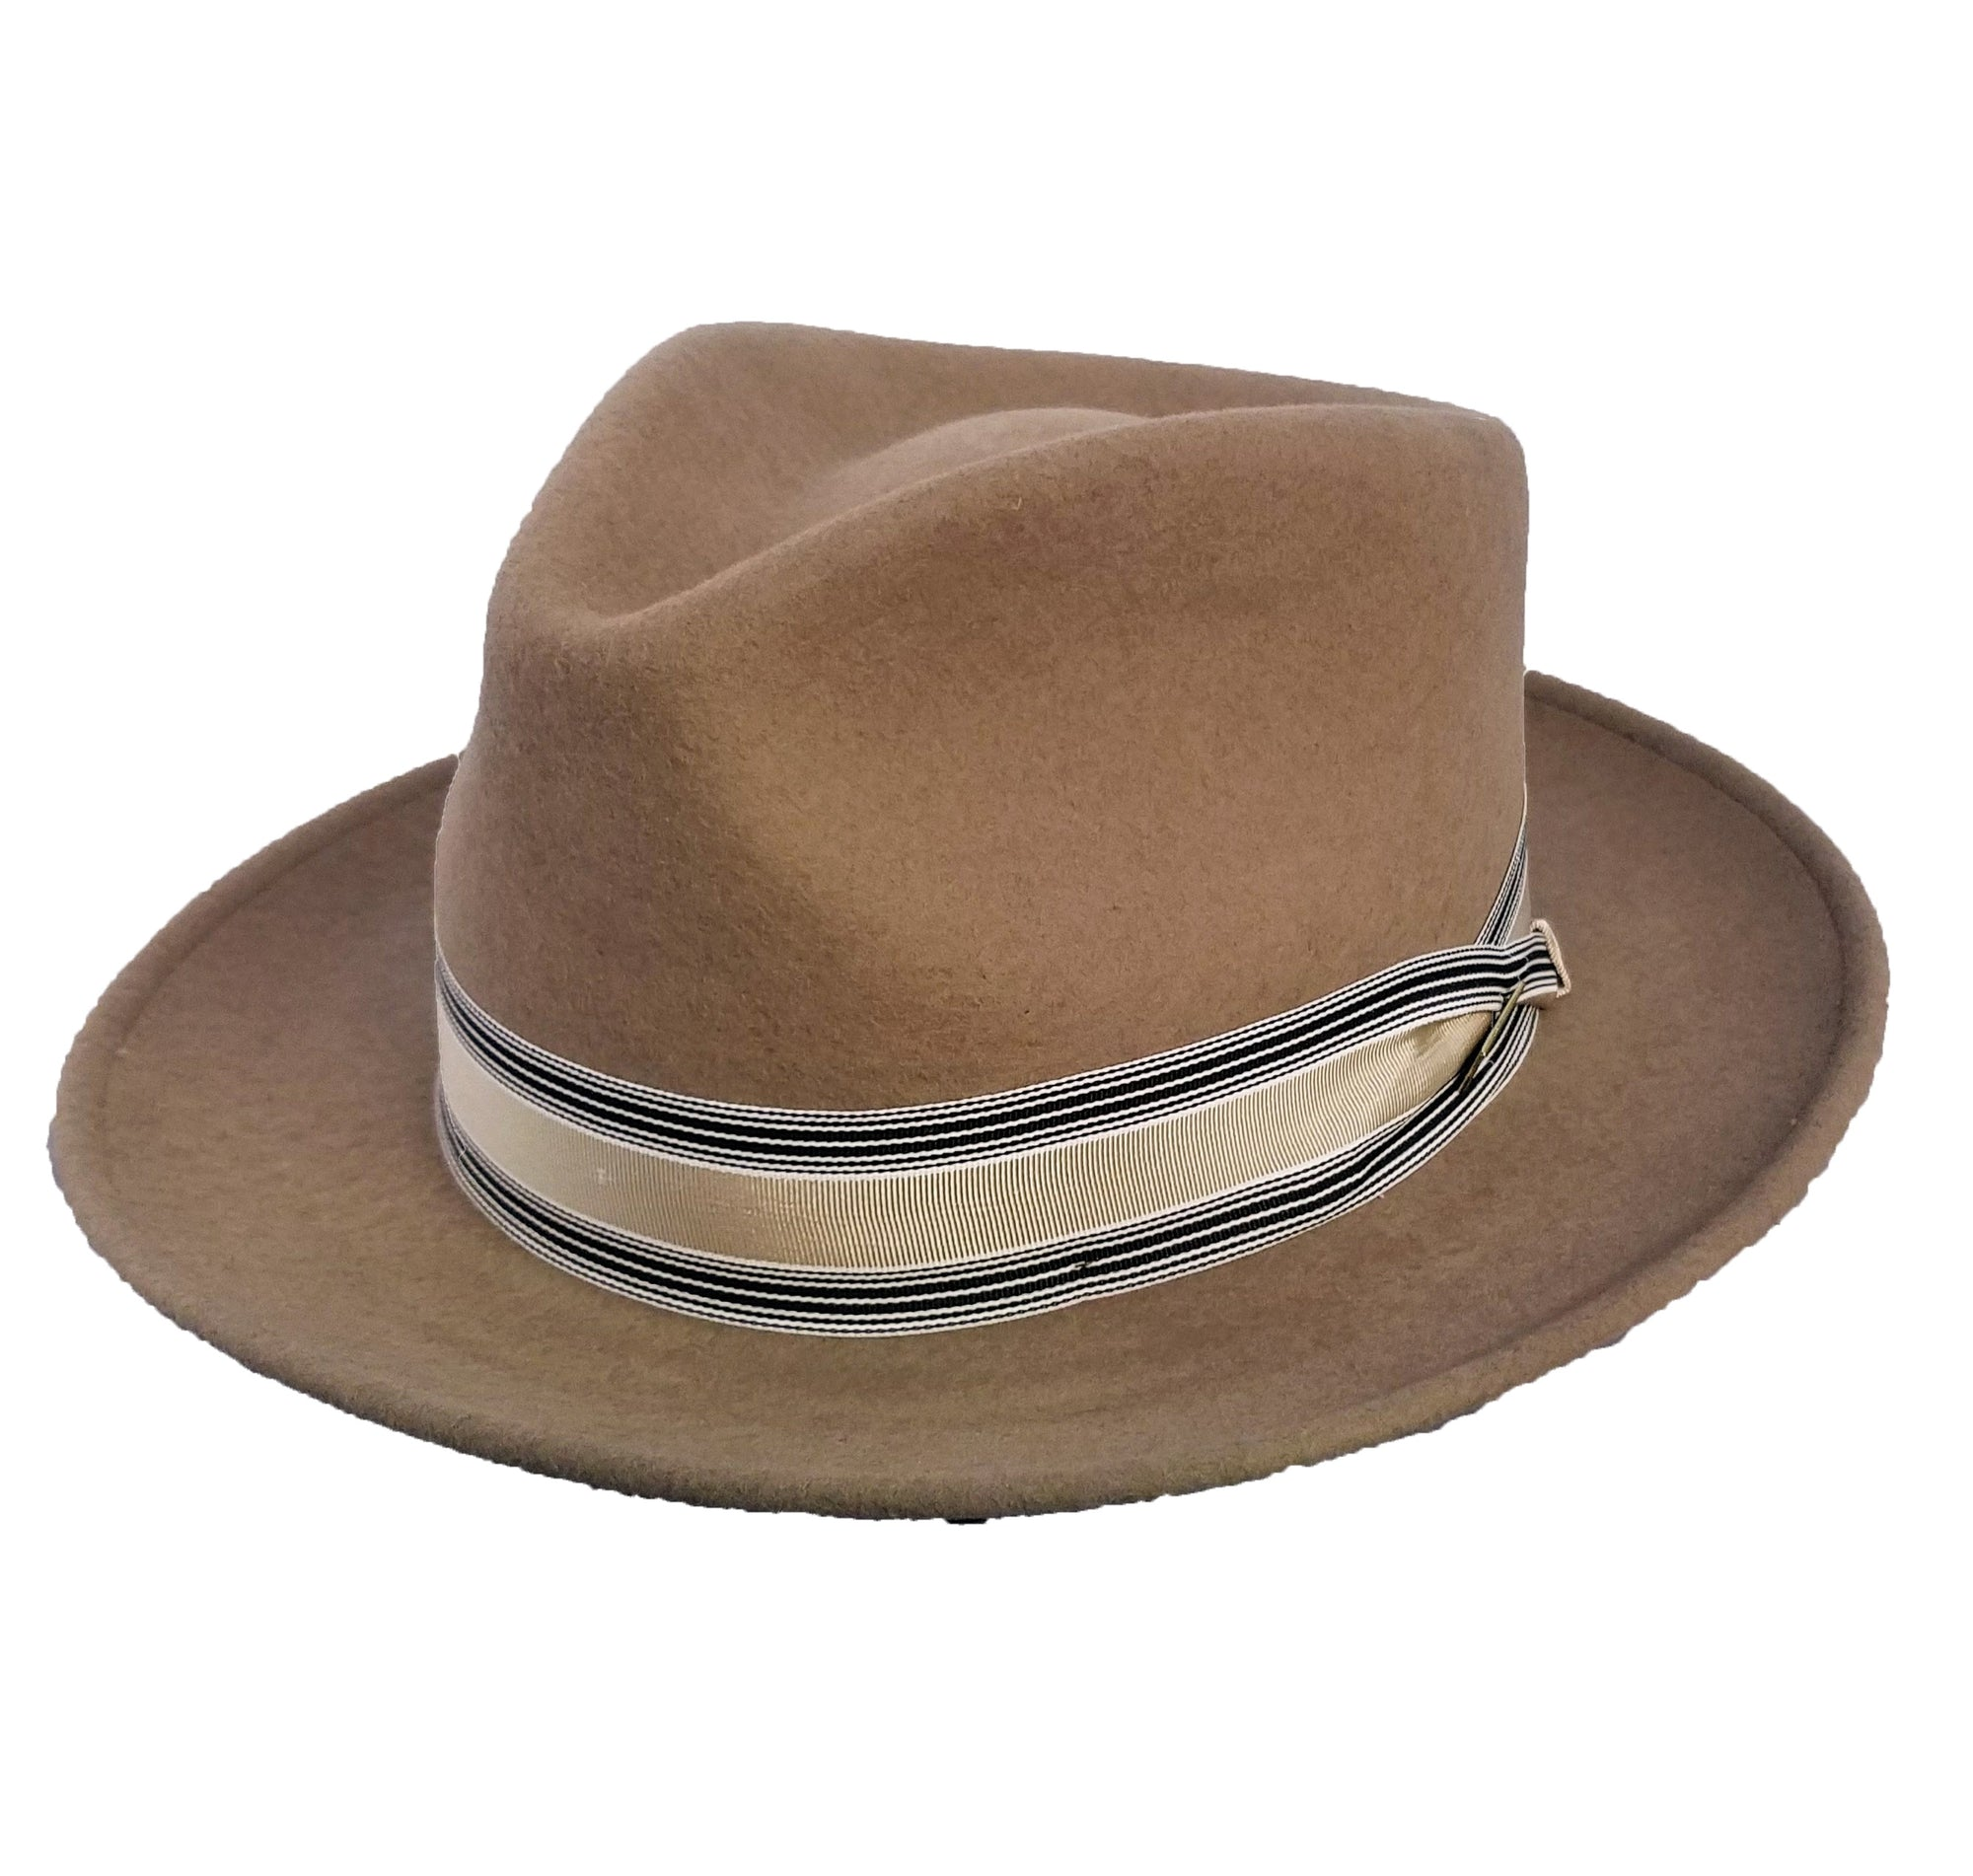 Deluxe Showman Teardrop Crown Wool Felt Fedora Hat - Dapperfam.com